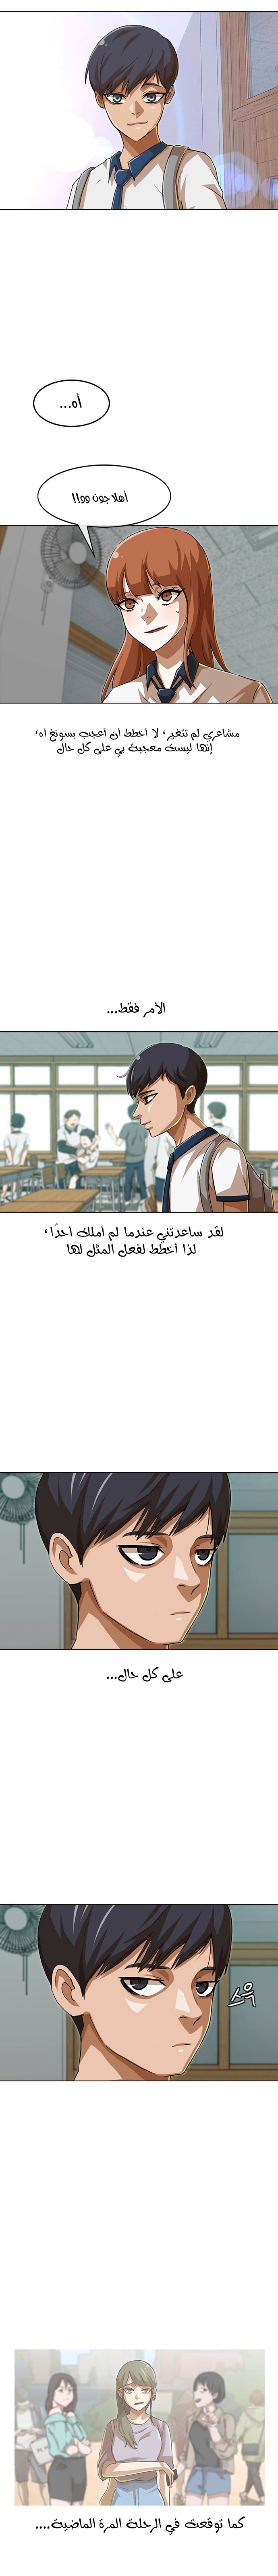 The Girl from Random Chatting - الفصل 58 أونلاين 0413